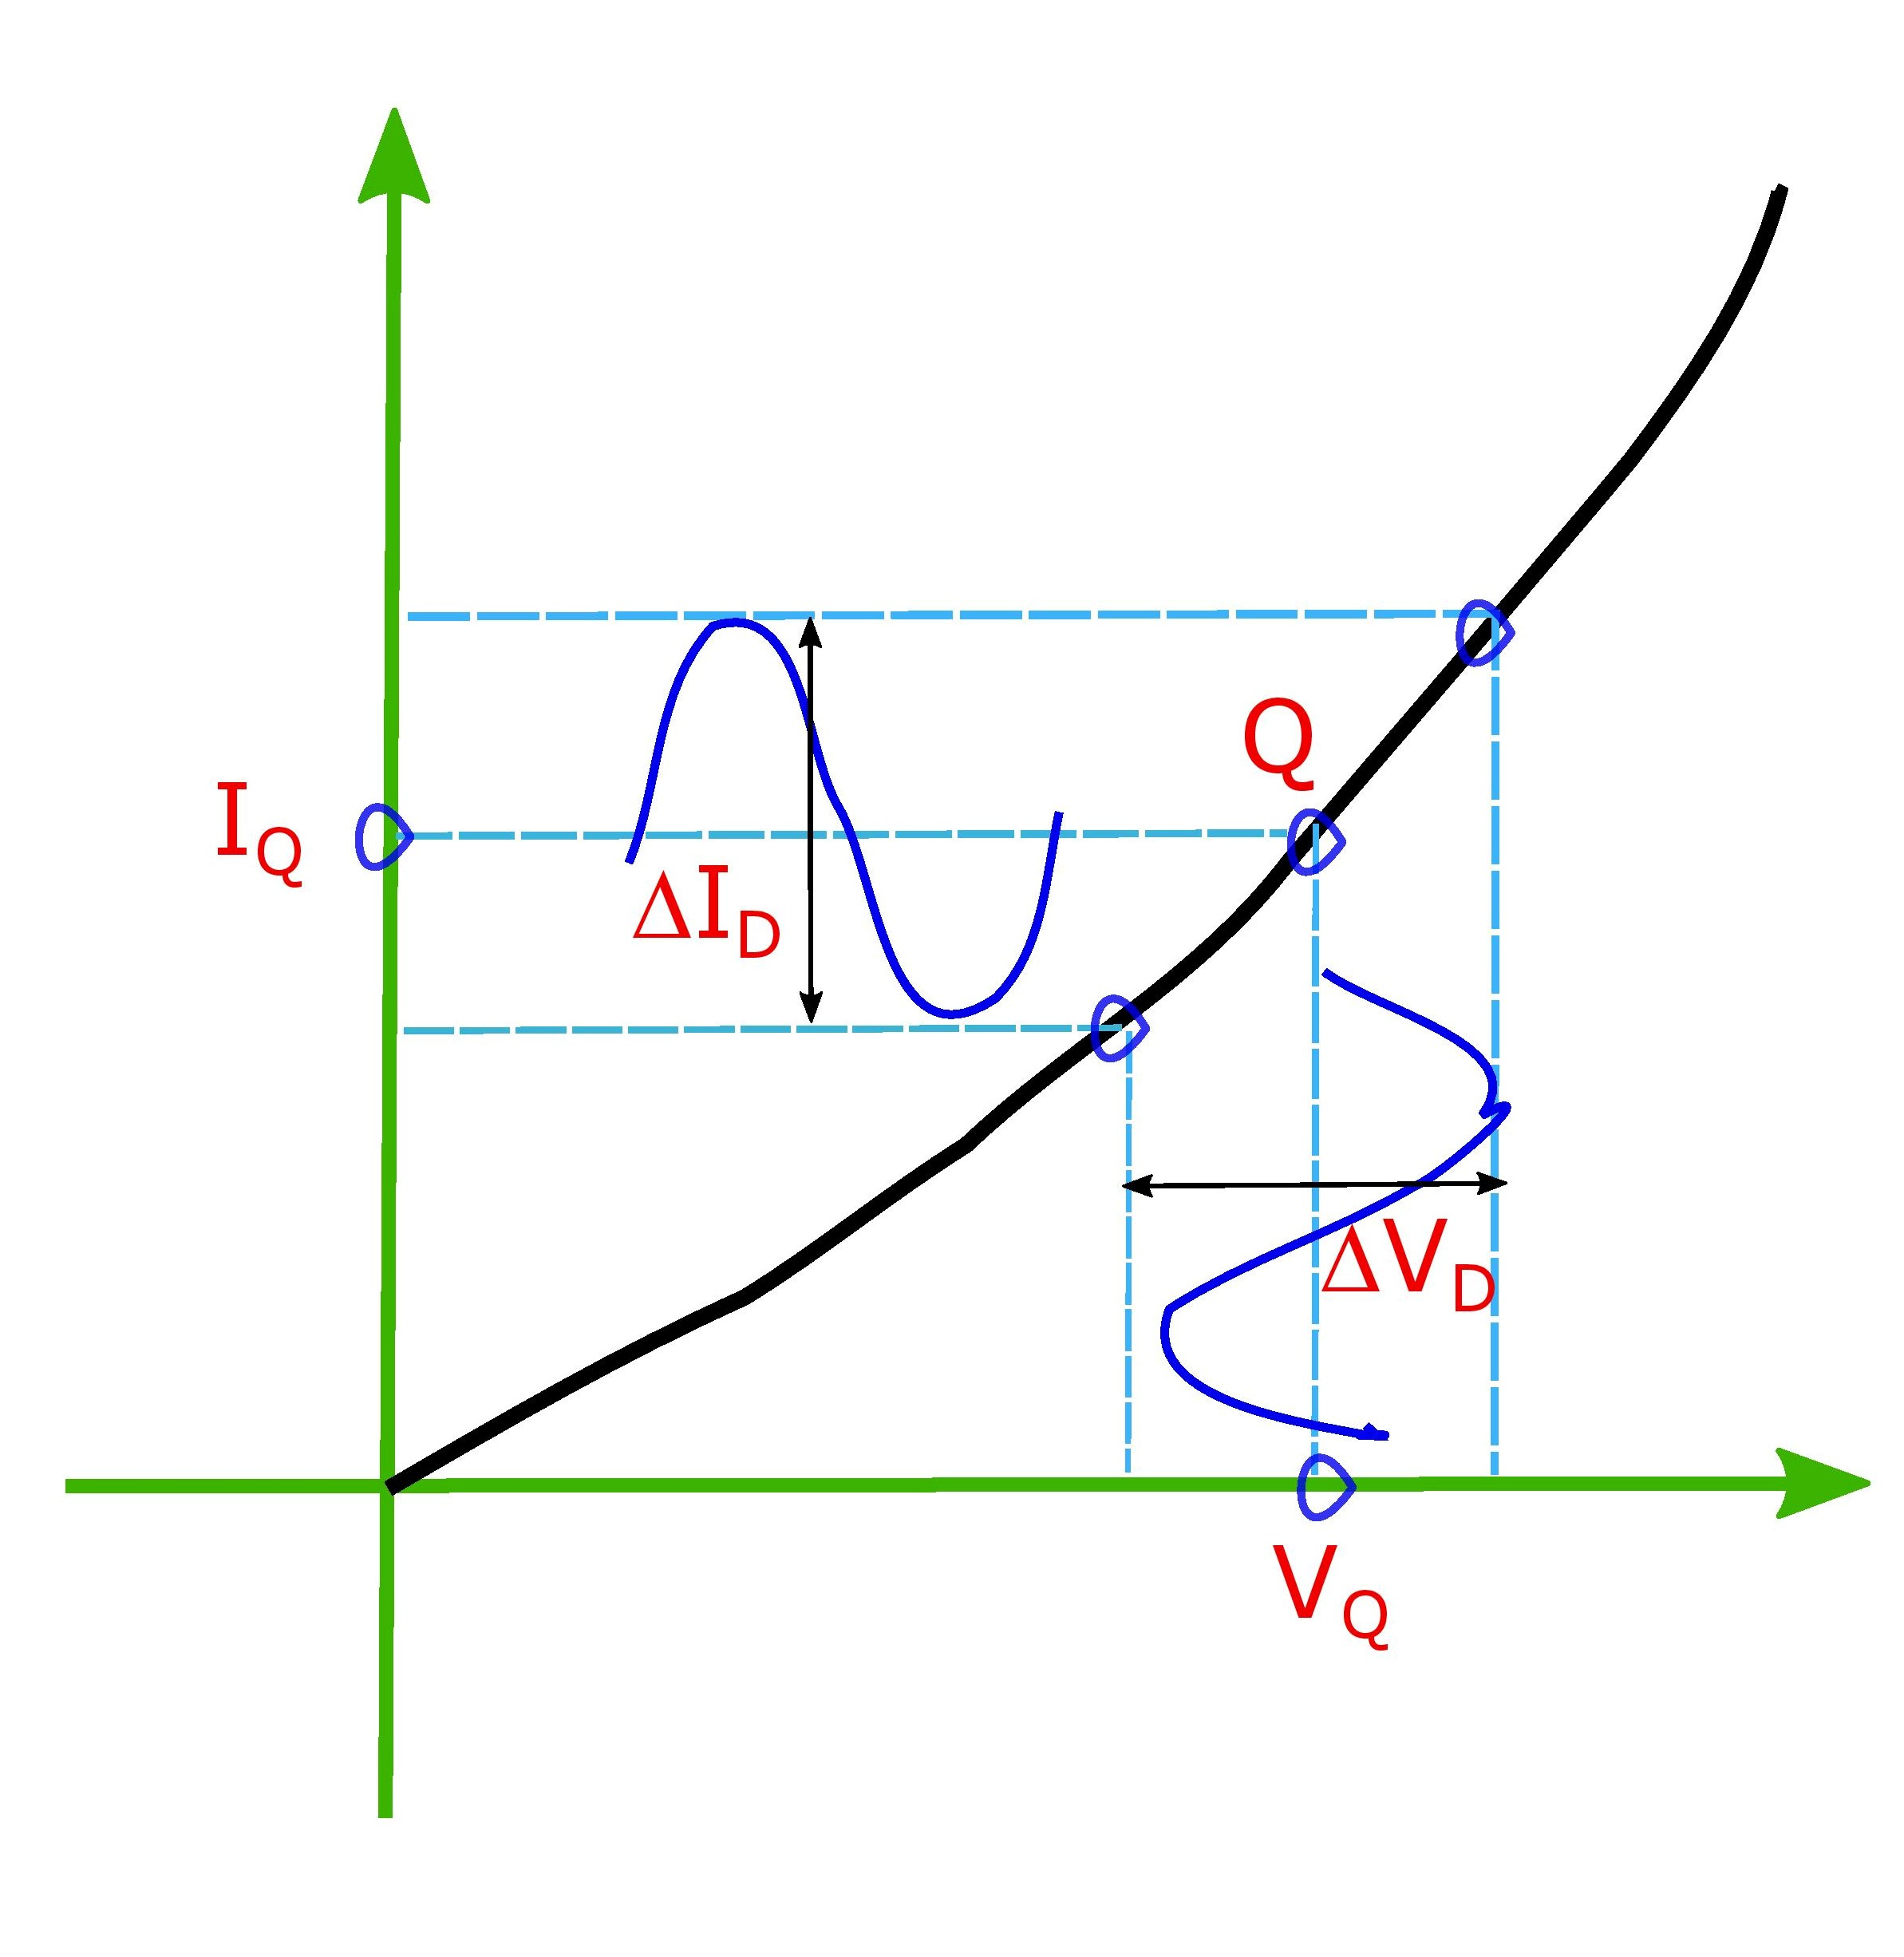 The forward dynamic resistance depends on a operational point and the instantaneous value of the ratio of voltage to current. For an average value any two points can be chosen and a straight line can be drawn between the two giving the slope of the line is equivalent to inverse of the dynamic resistance in this given diagram.